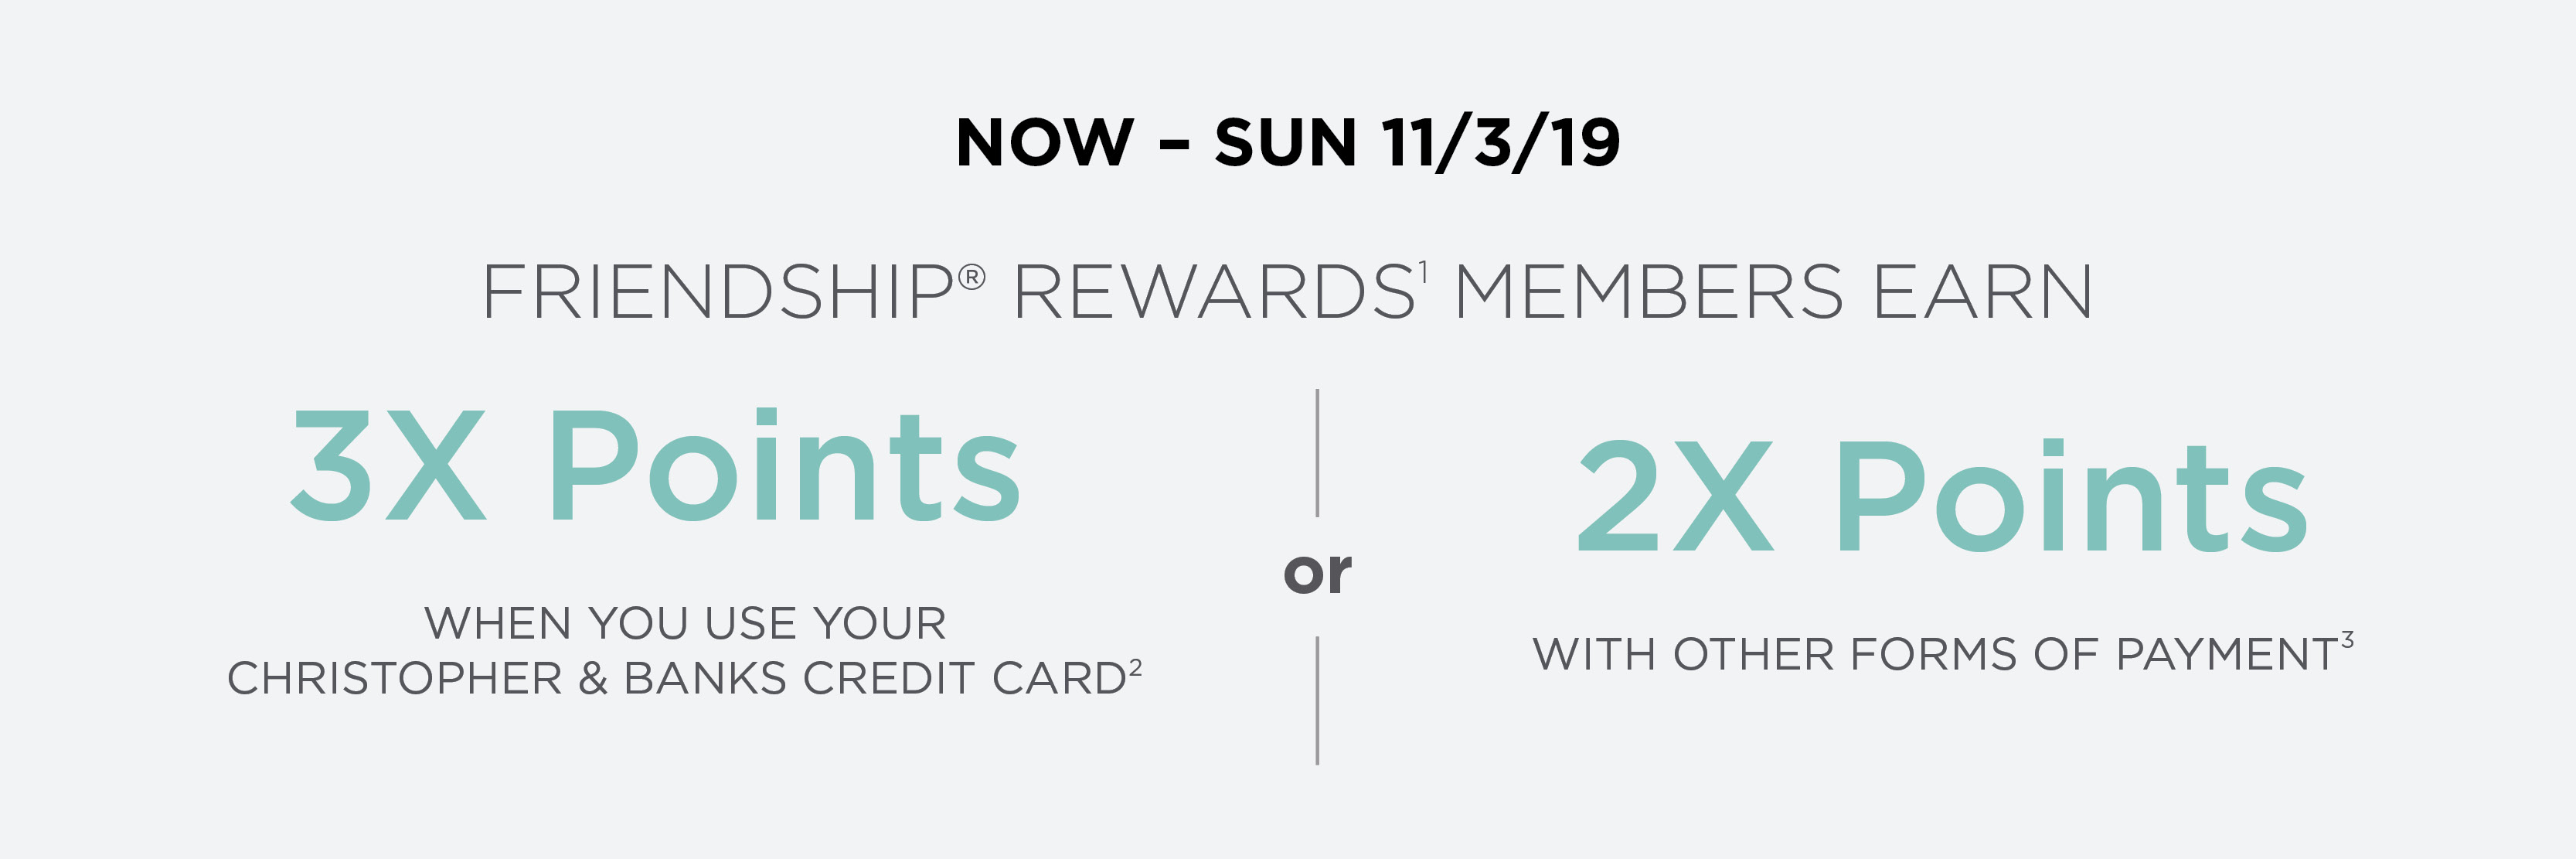 Through Sunday, November third, 2019: Friendship® Rewards(1) members earn three-times points when you use your Christopher & Banks credit card(2) or two-times points with other forms of payment(3)!